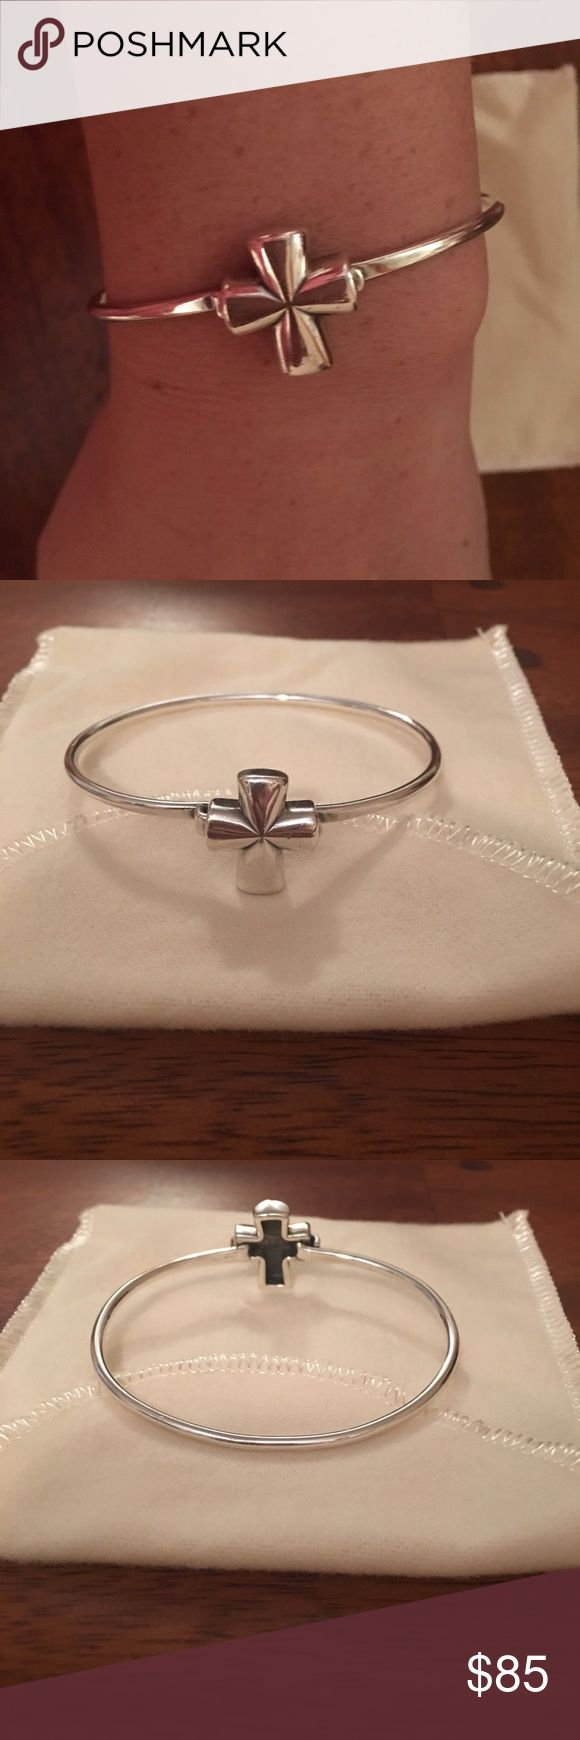 James Avery St. Teresa Cross Hook Bracelet James Avery St. Teresa Cross Hook Bracelet. Design is retired. Previously loved. Minimal signs of wear. Just cleaned at store & has dust bag. This is an elegant and charming James Avery St. Teresa Cross bangle bracelet, it is crafted from solid sterling silver in a fine polished finish and fastens with a hook clasp. The front has a Cross attached at one side of the bangle and opens from the other side.  Material: Sterling silver  Measurements: 6.75…